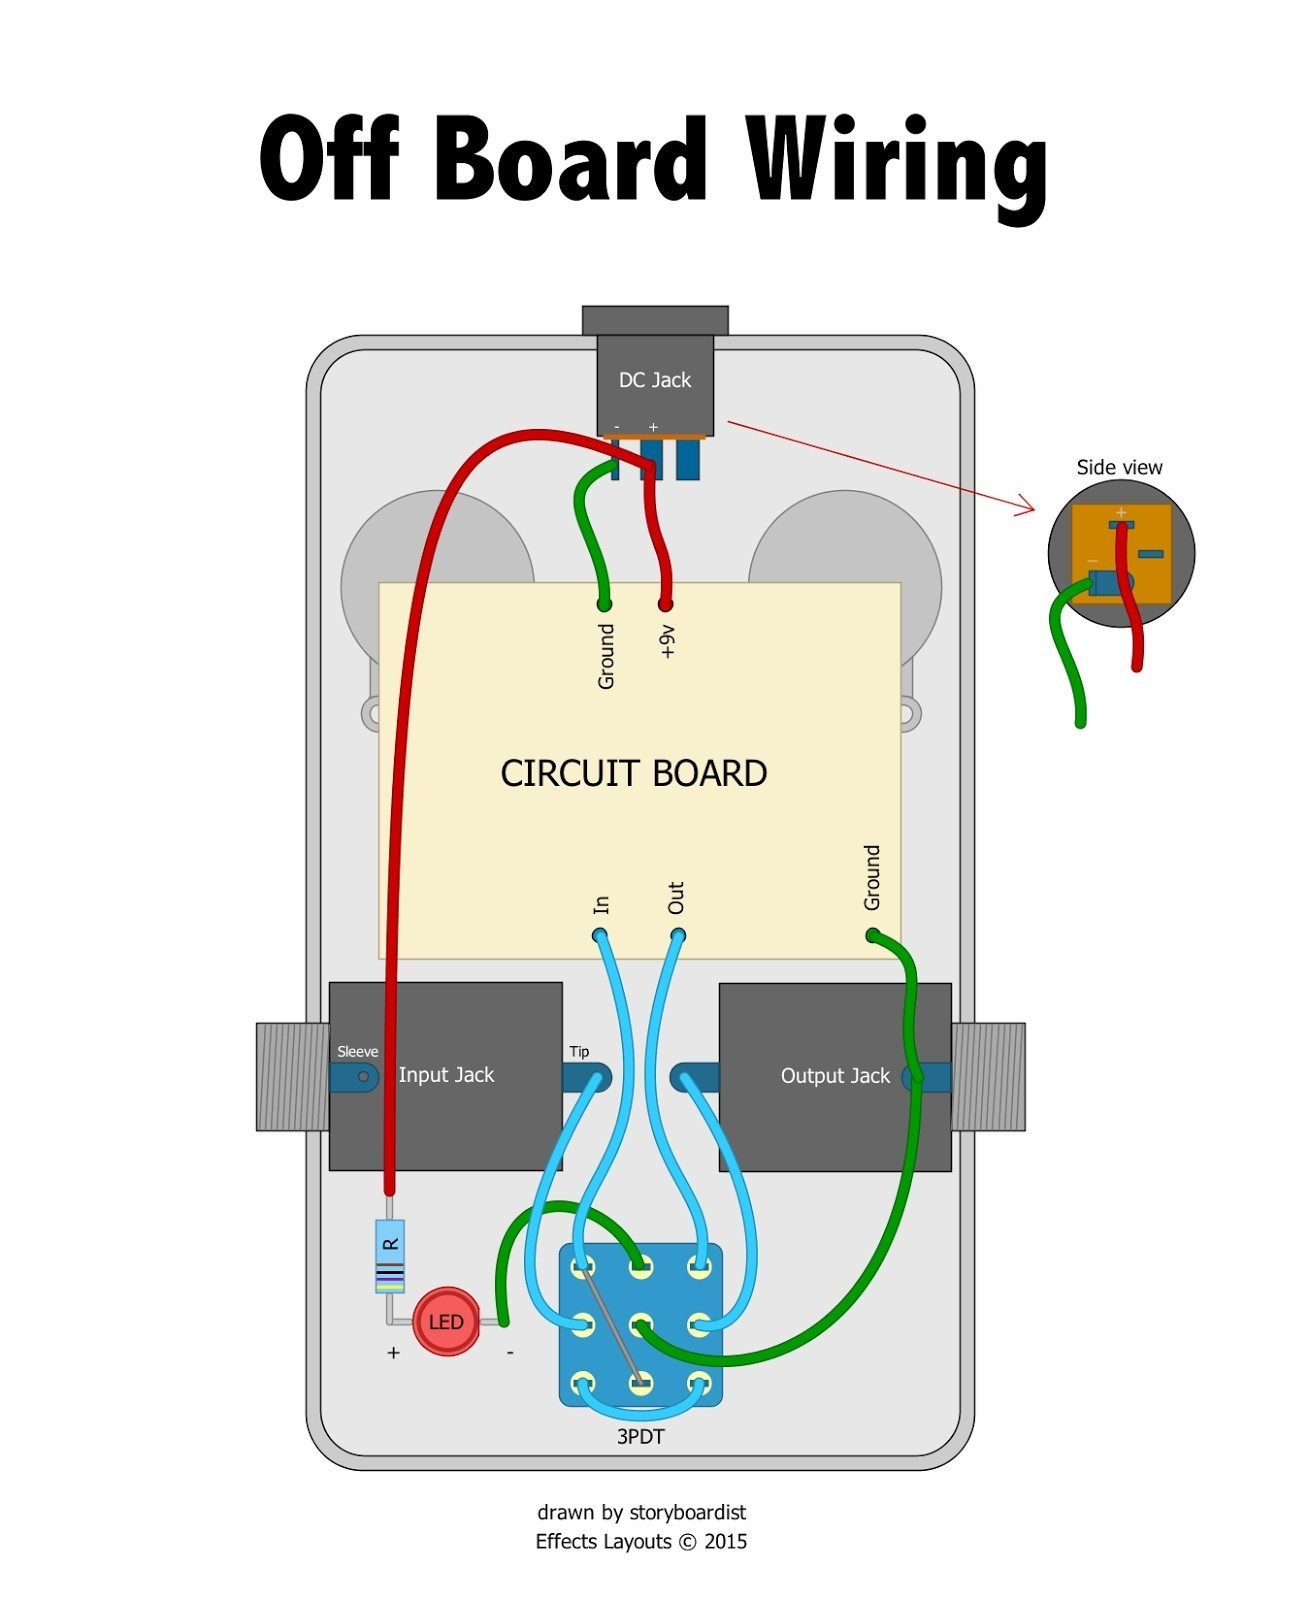 Wiring Diagram Guitar Jack New Wiring Diagram Guitar Pedal Valid Perf and Pcb Effects Layouts